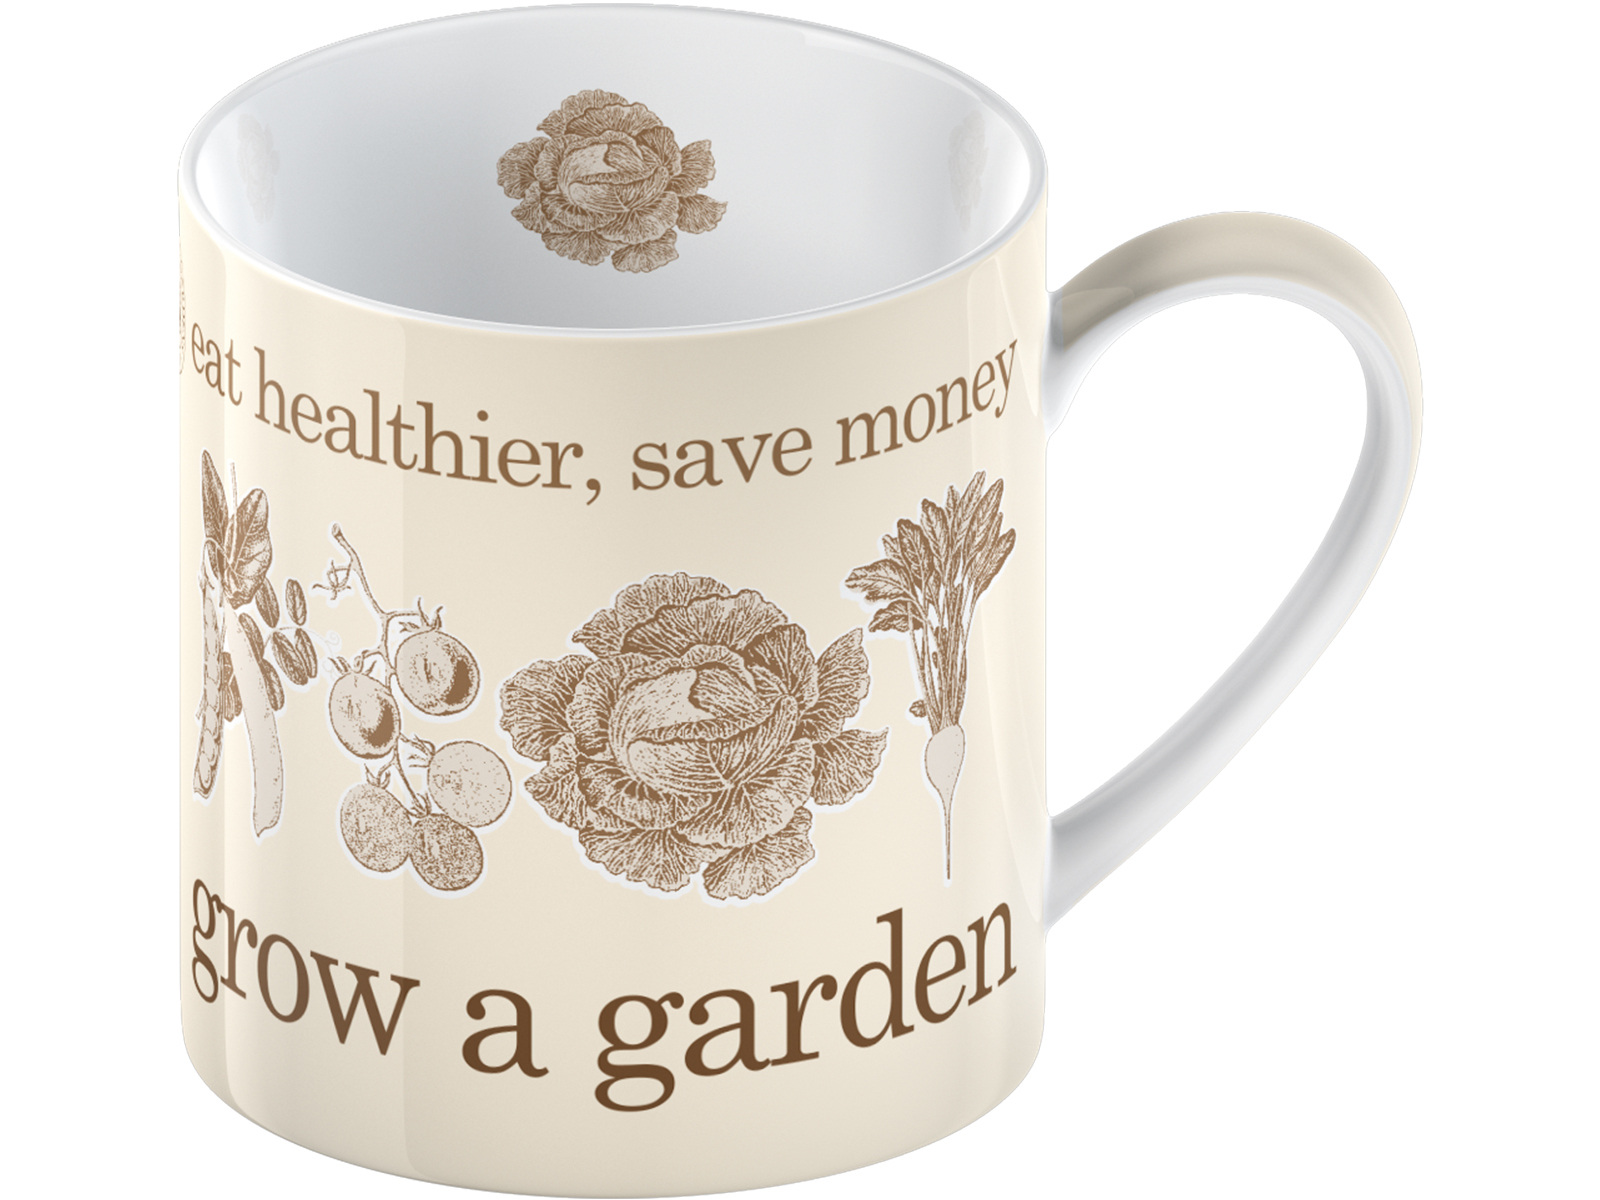 Kew Gardens Grow A Garden Can Mug